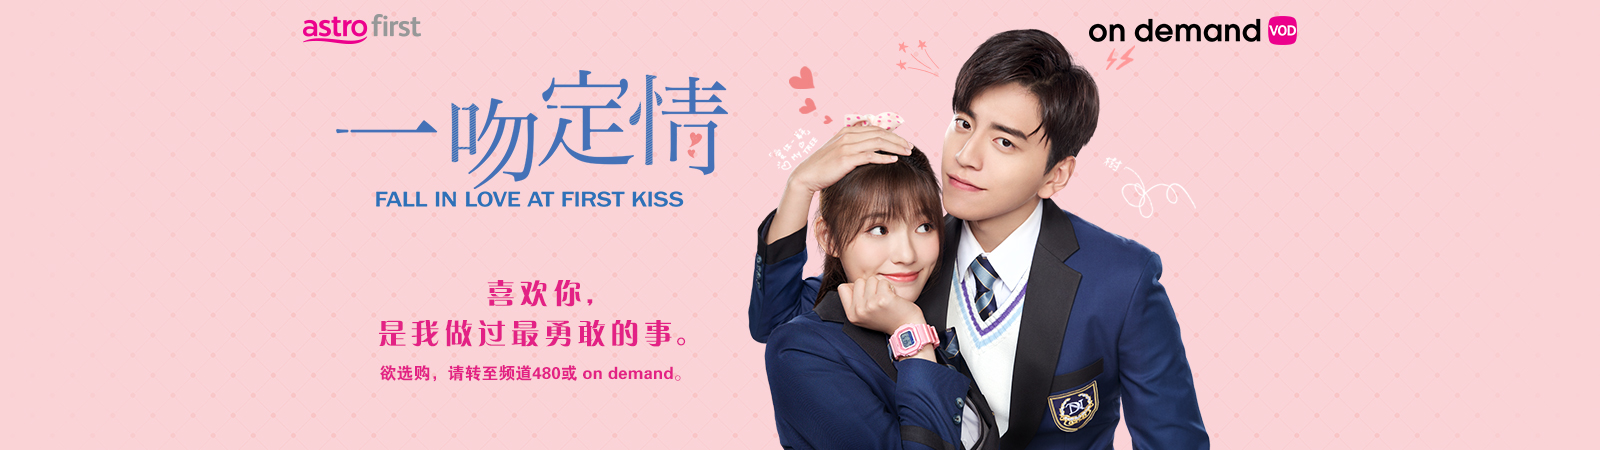 Fall In Love At First Kiss